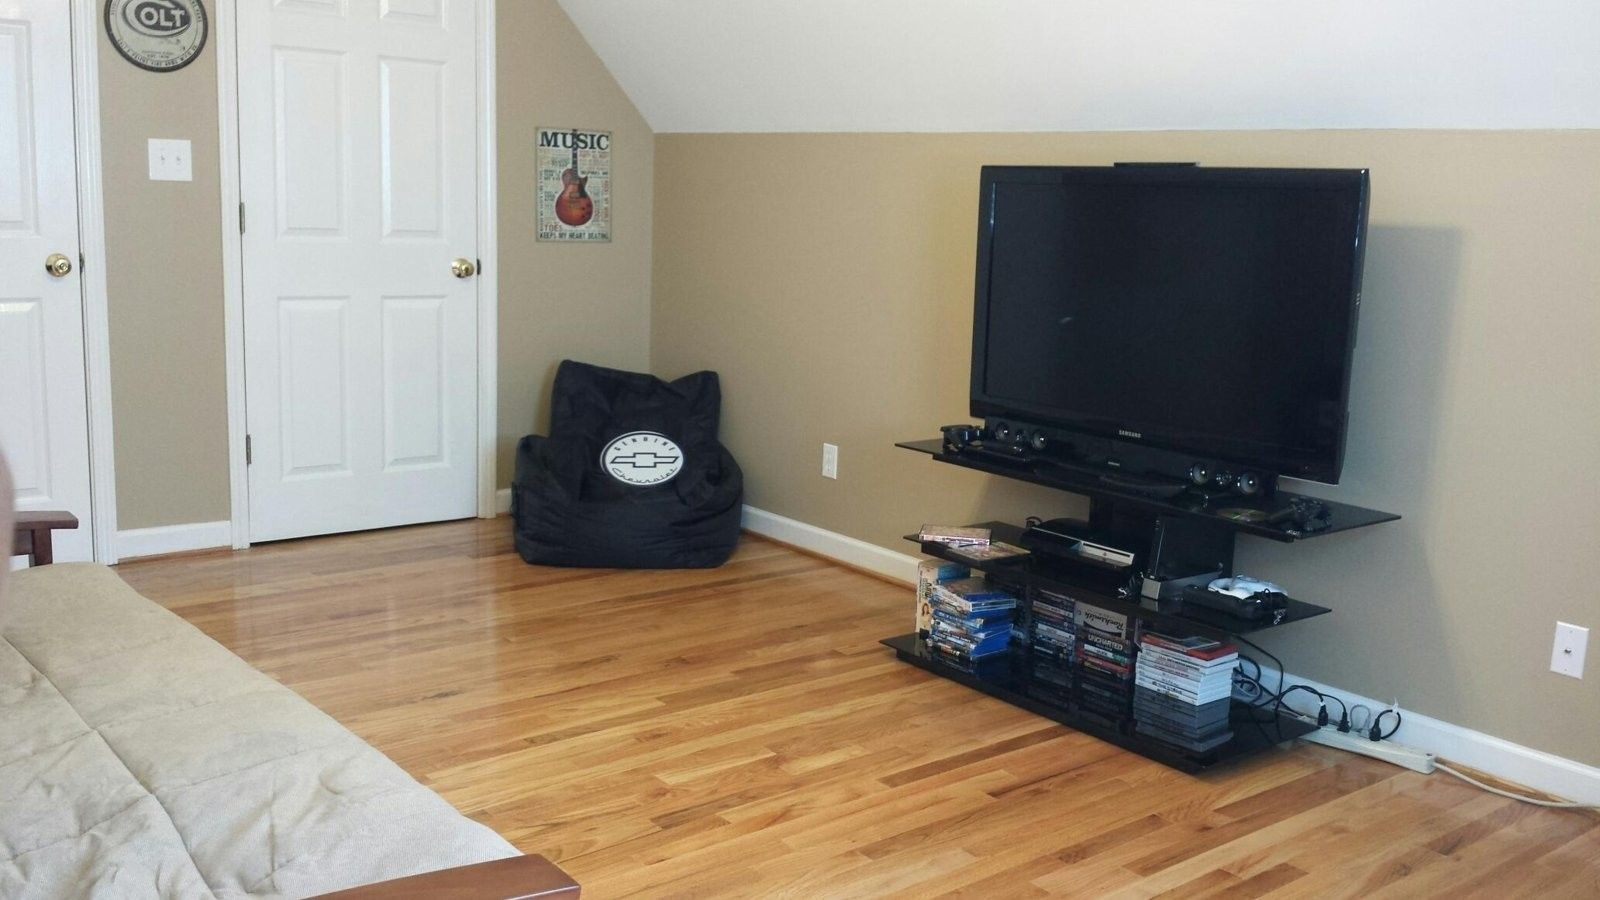 My Double Wide as of now. - 20140811_155359.jpg